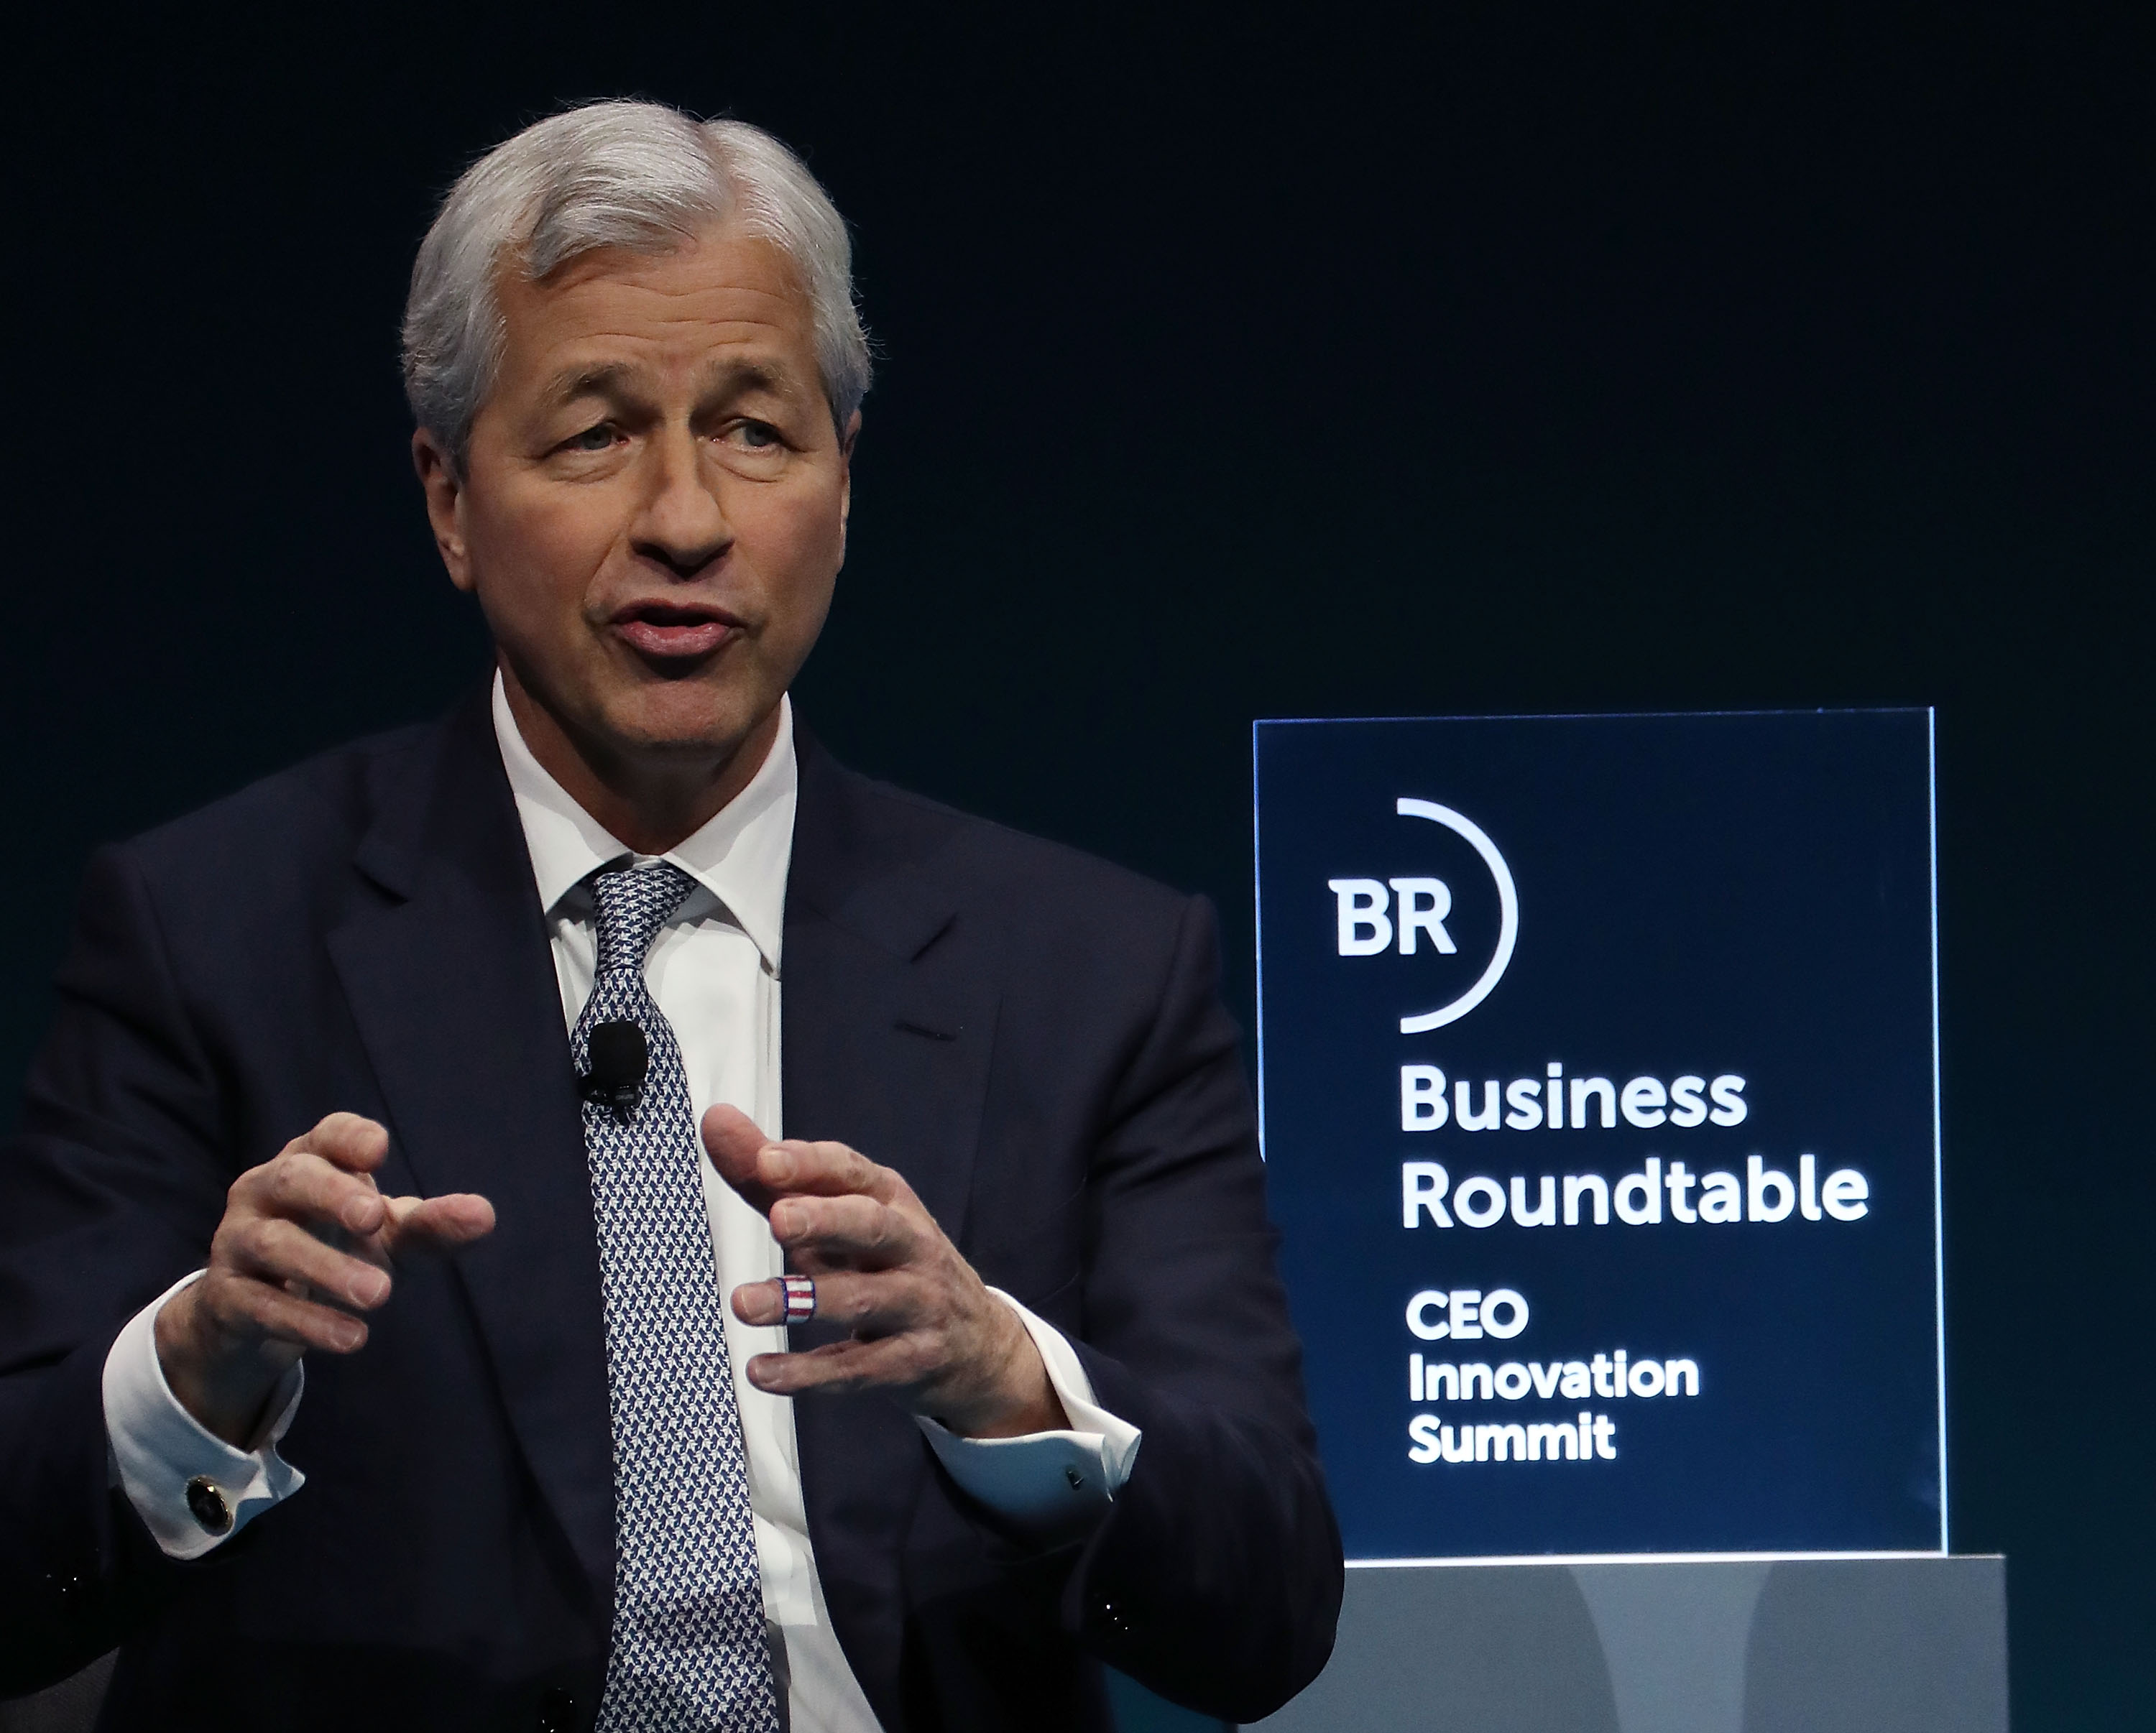 "Jamie Dimon, chairman and CEO of JPMorgan Chase, participates in a Business Roundtable discussion on ""Ambitious Innovation"" sustaining U.S. leadership, during a CEO Innovation Summit, on December 6, 2018 in Washington, DC. (Photo by Mark Wilson/Getty Images)"